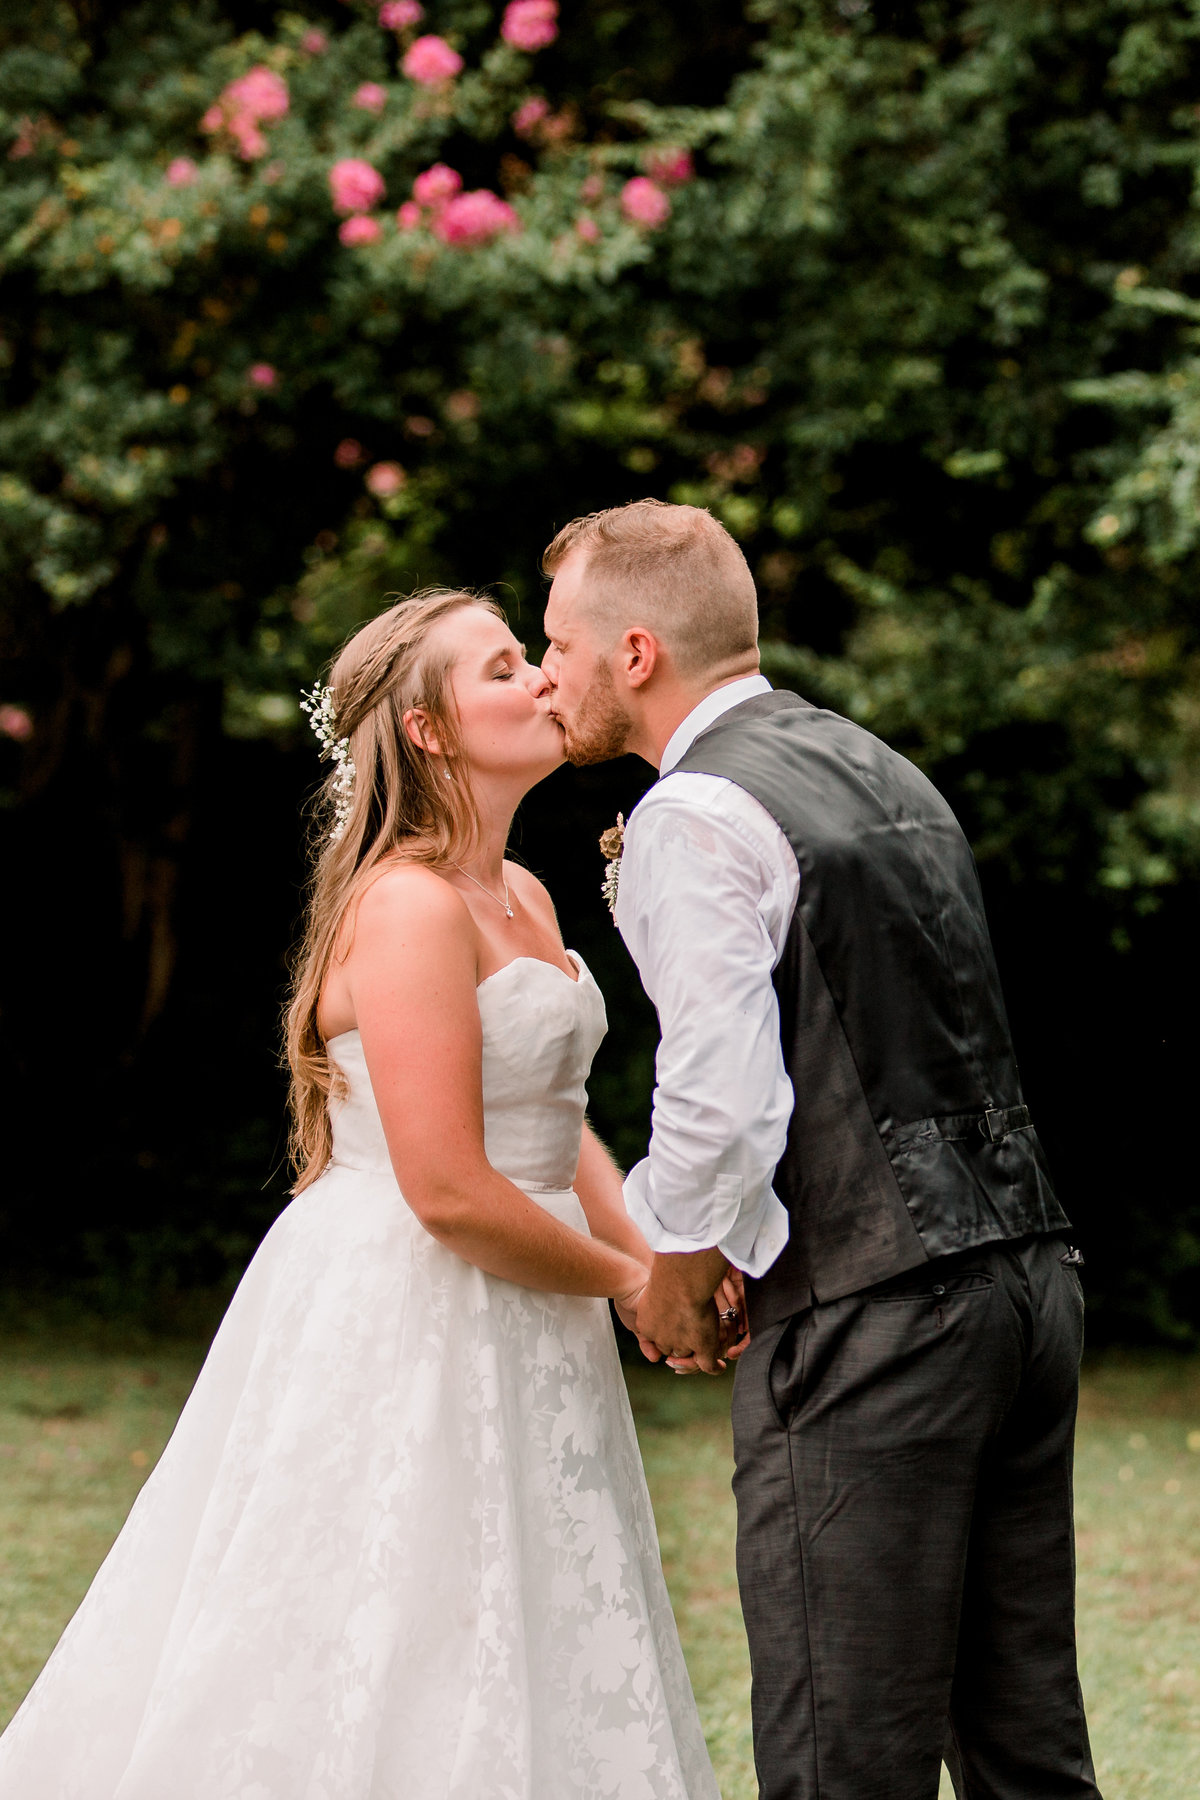 sharonelizabethphotography-surryvirginiawedding-rusticbackyardwedding-richmondvirginiaoutdoorwedding2298